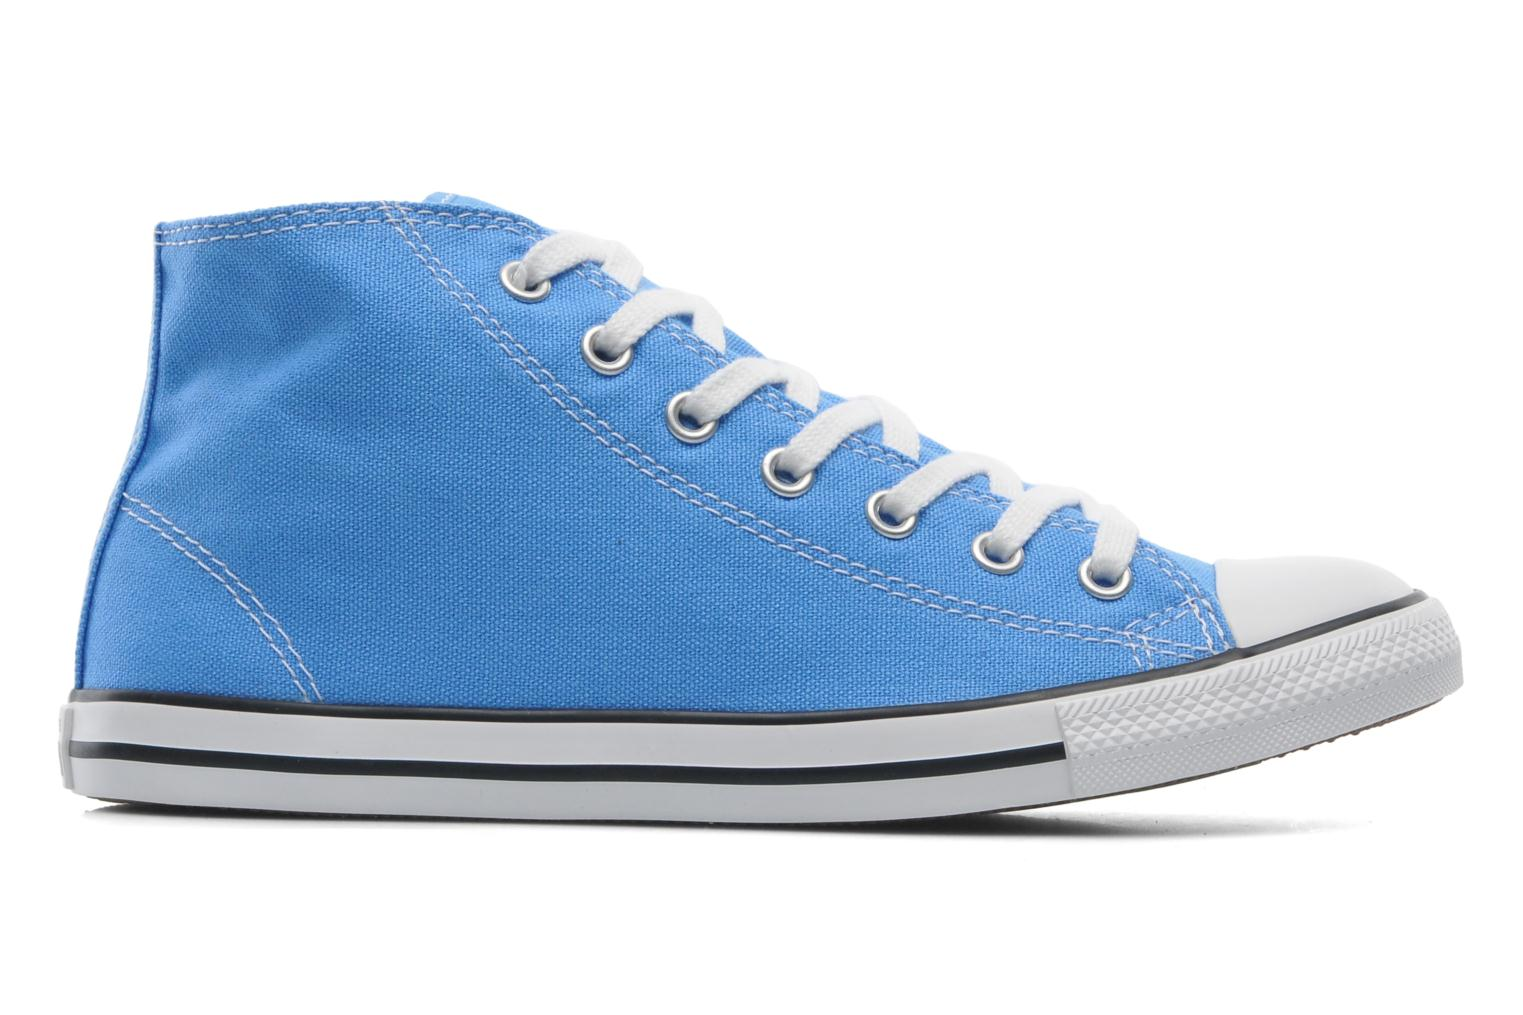 Baskets Converse All Star Dainty Canvas Mid W Bleu vue derrière